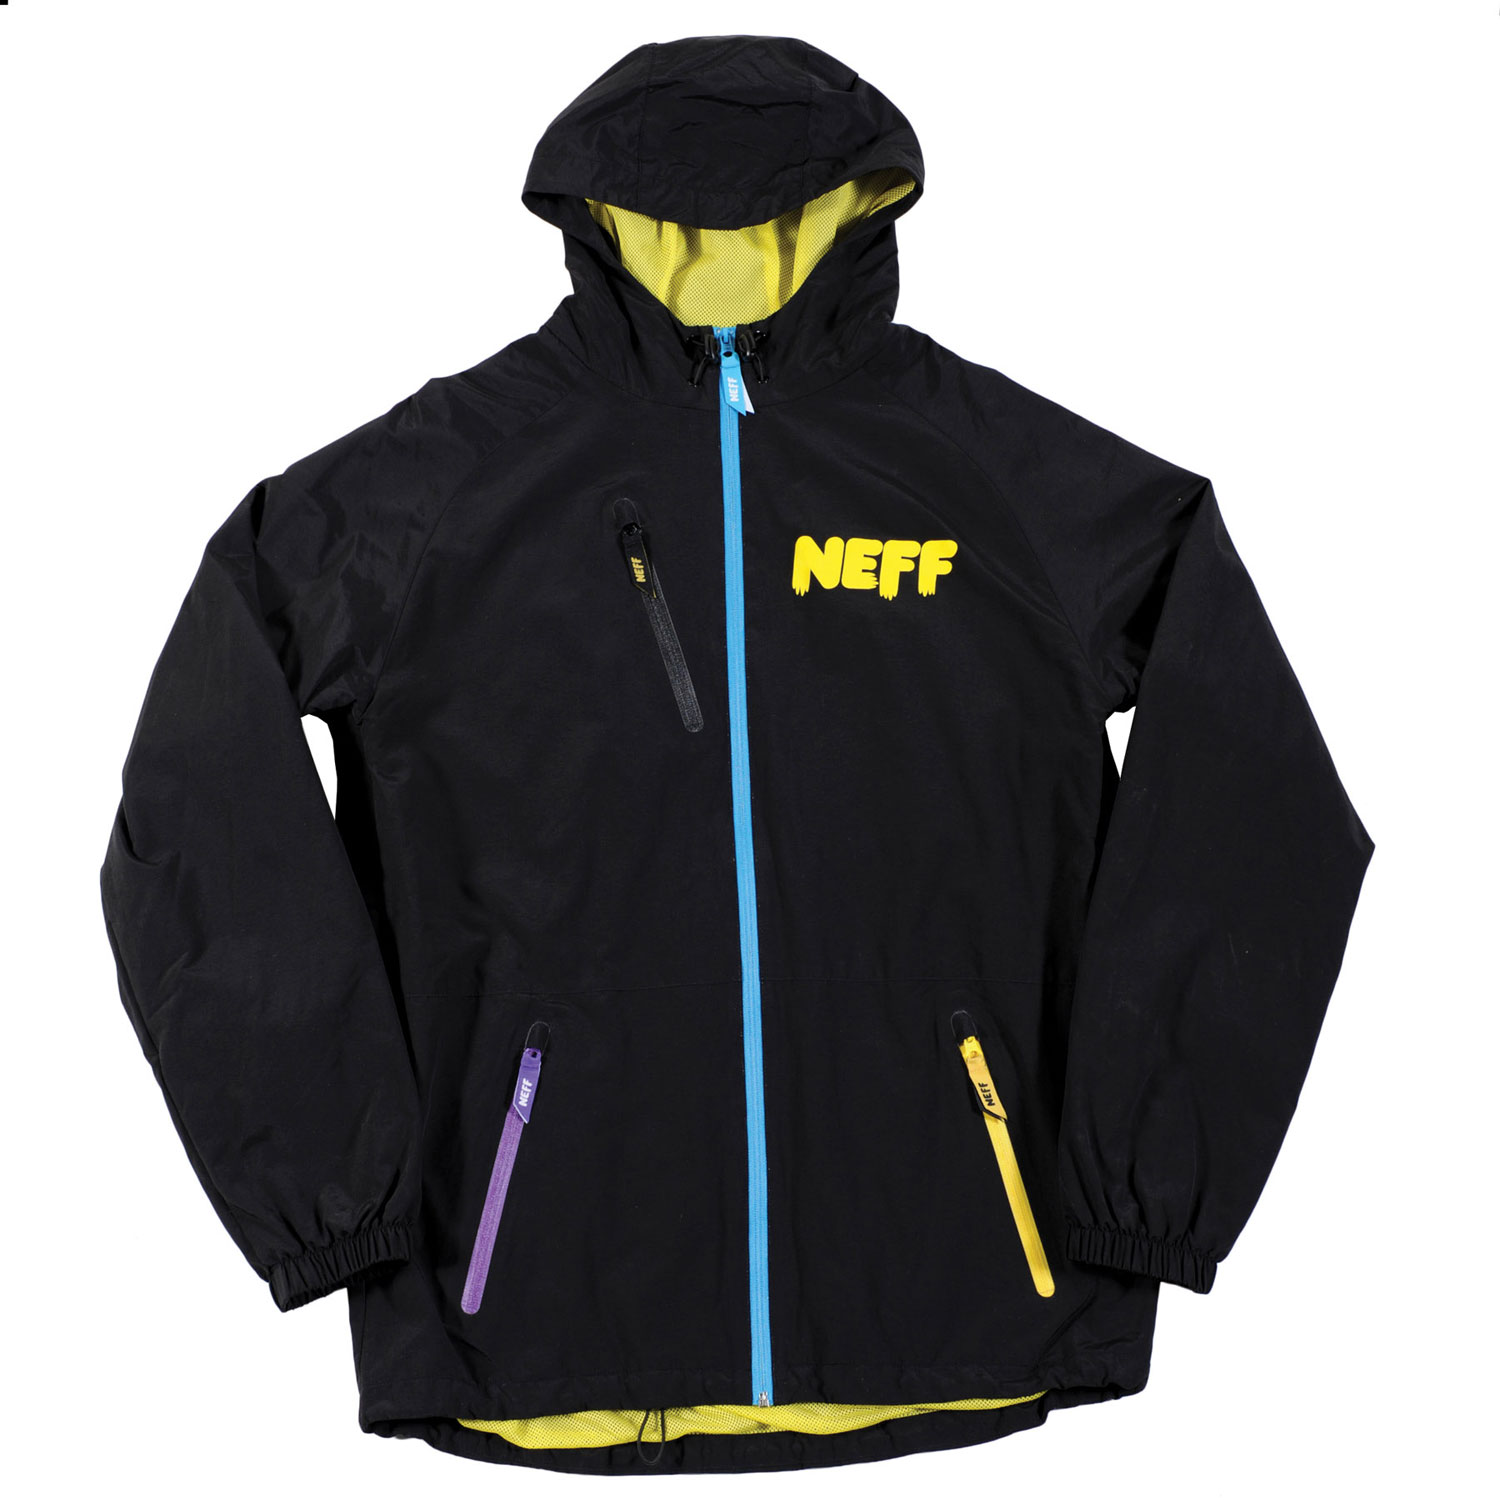 Snowboard Key Features of the Neff Sno Poncho Jacket: 5,000mm Coating 100% Polyester Adjustable hood and waist Stretchy wrist gaiters Laser cut weather proof zippers with Custom tabs Polyester mesh liner Pit Zips - $62.95